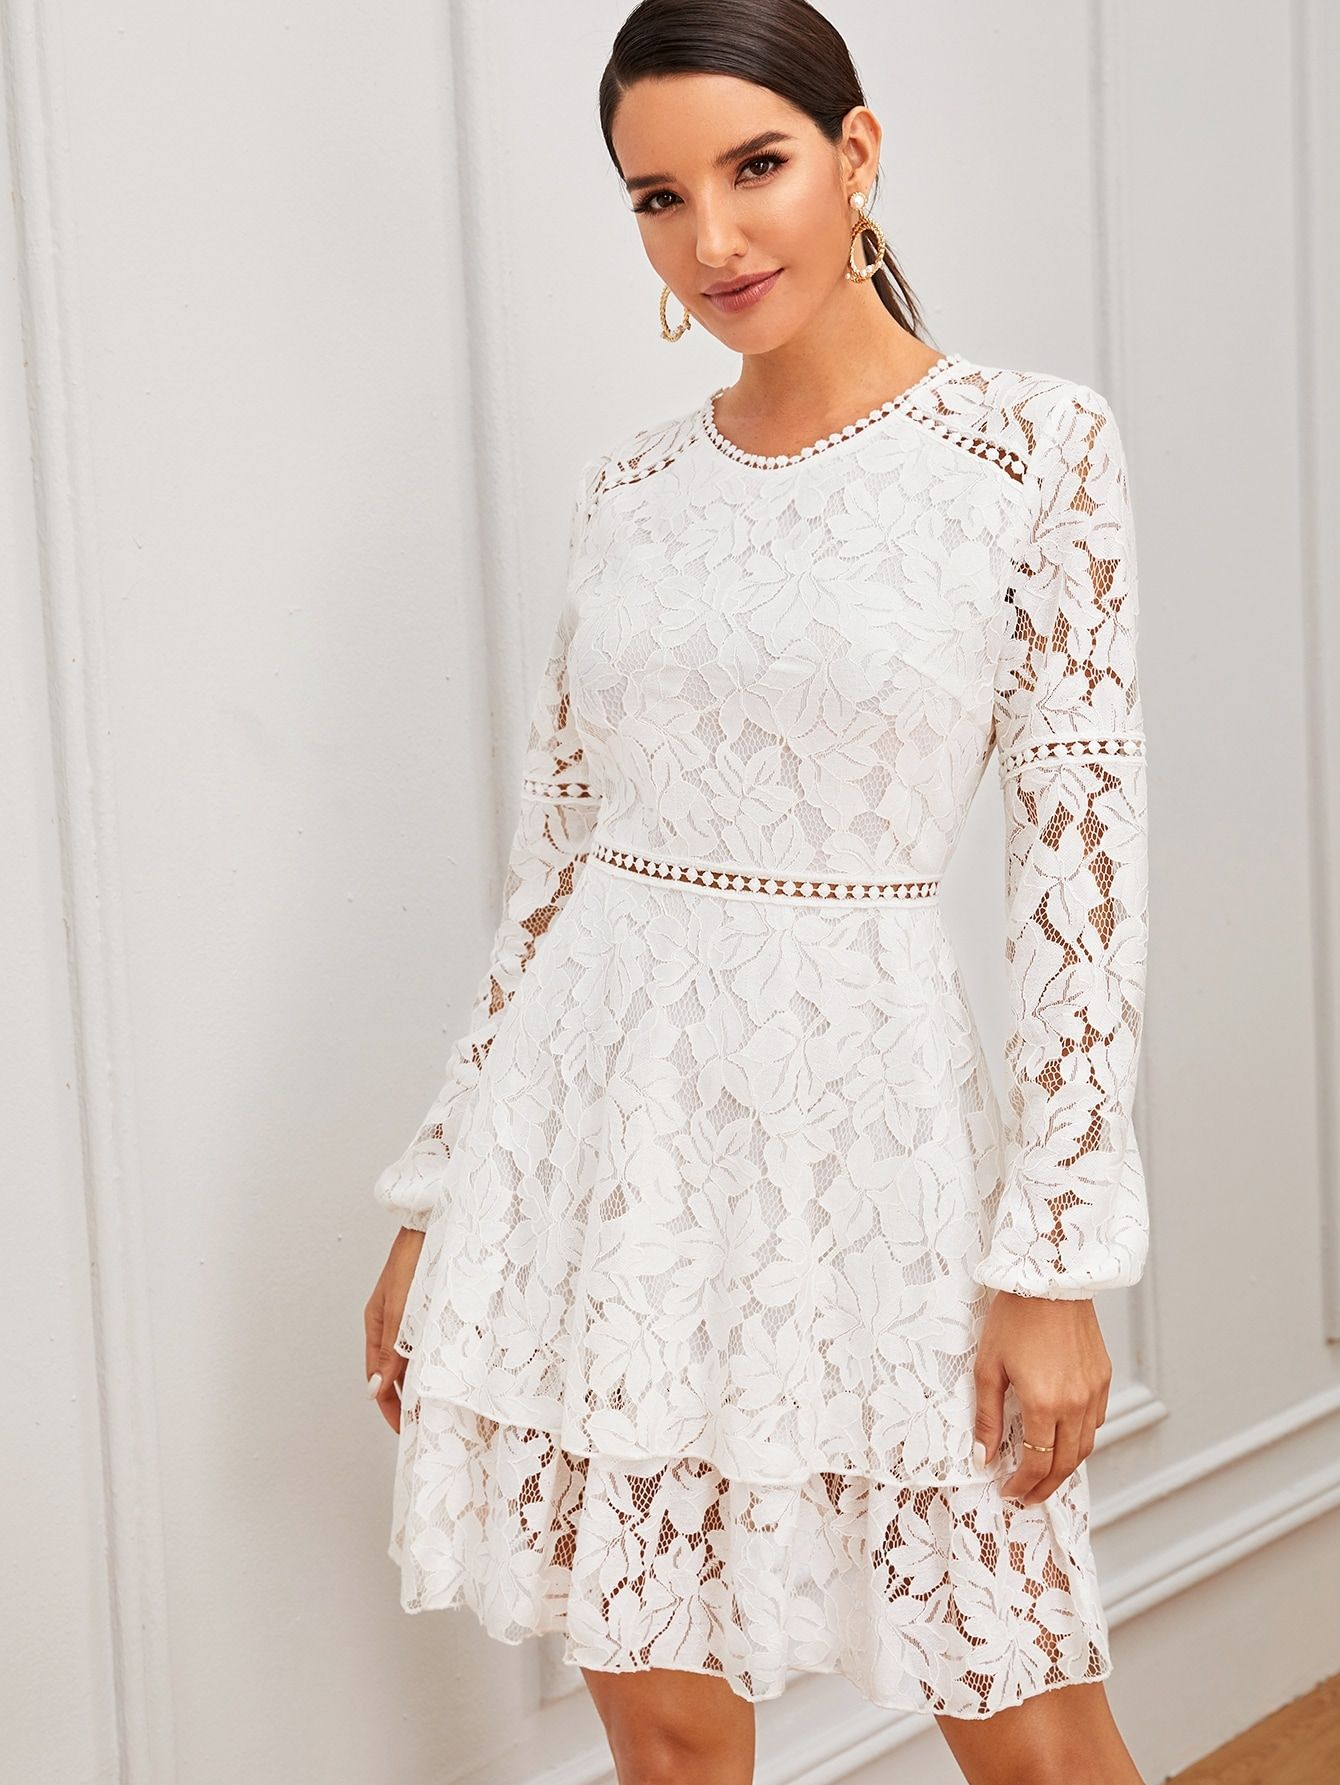 Ad Zip Back Layered Lace Dress Tags Romantic White Plain Round Neck Short A Line Party Dresses With Sleeves Lace Dress Casual Long Sleeve Casual Dress [ 1785 x 1340 Pixel ]